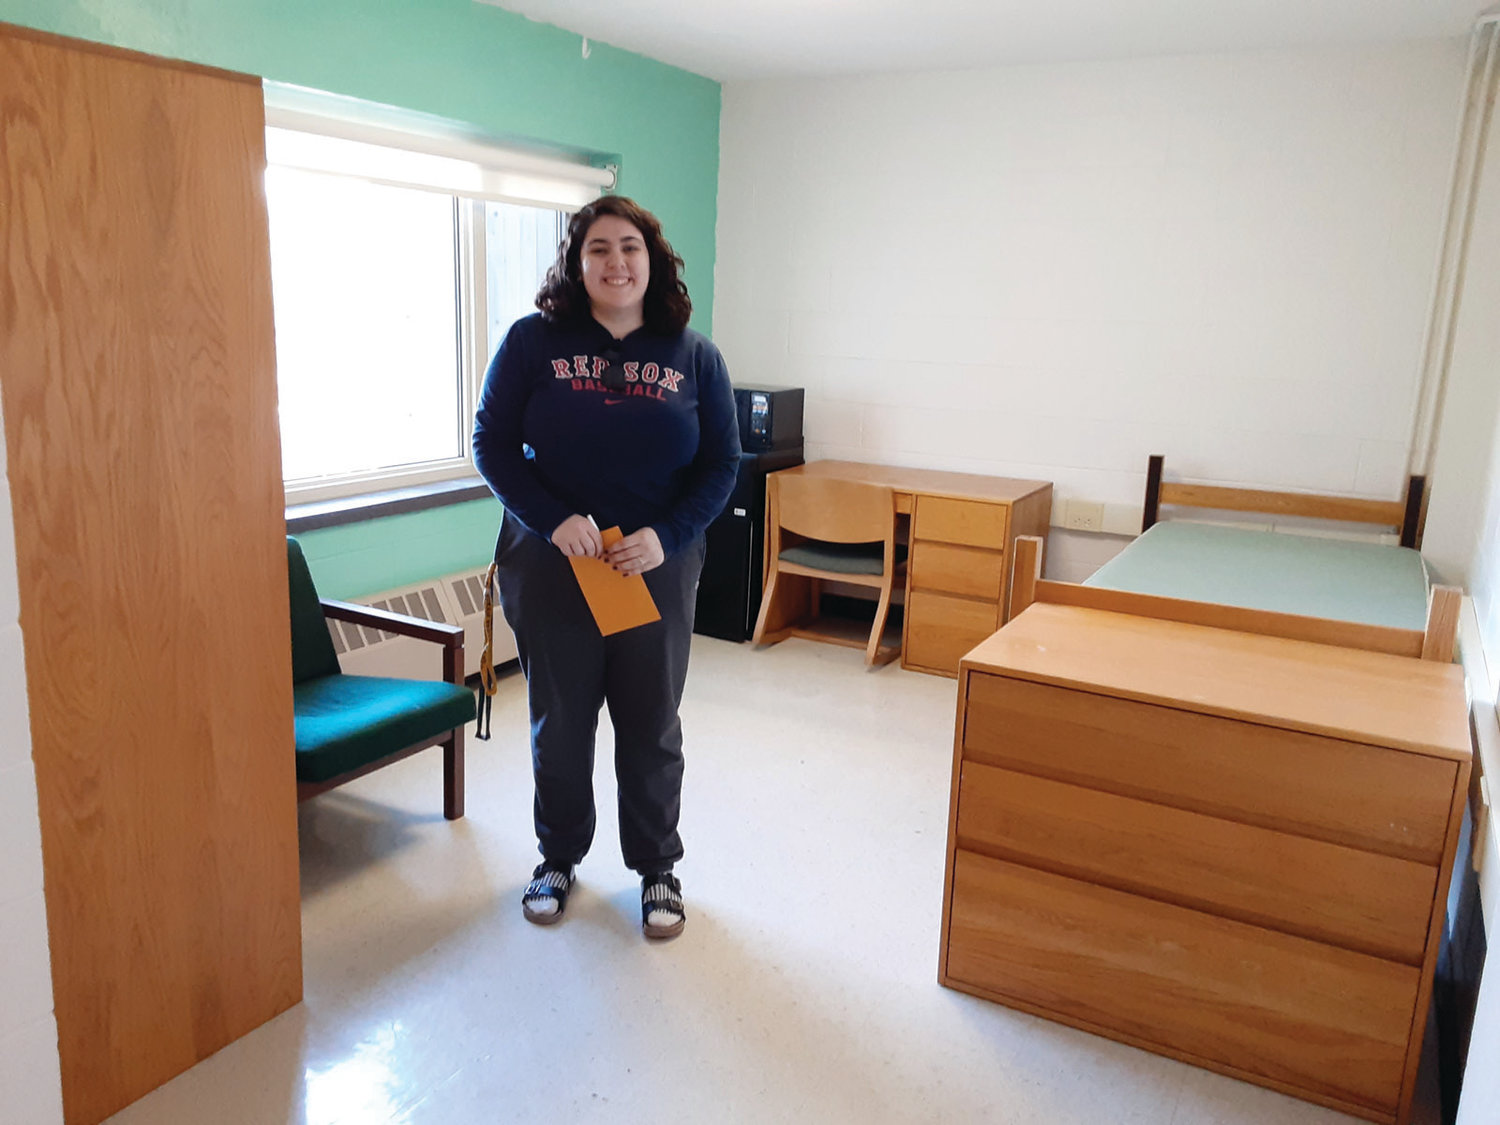 SMILING DESPITE THE CRISIS: Our oldest daughter gave me a brave smile as we took one last picture of her in her dorm room. The rest of her sophomore year would be completed at home.